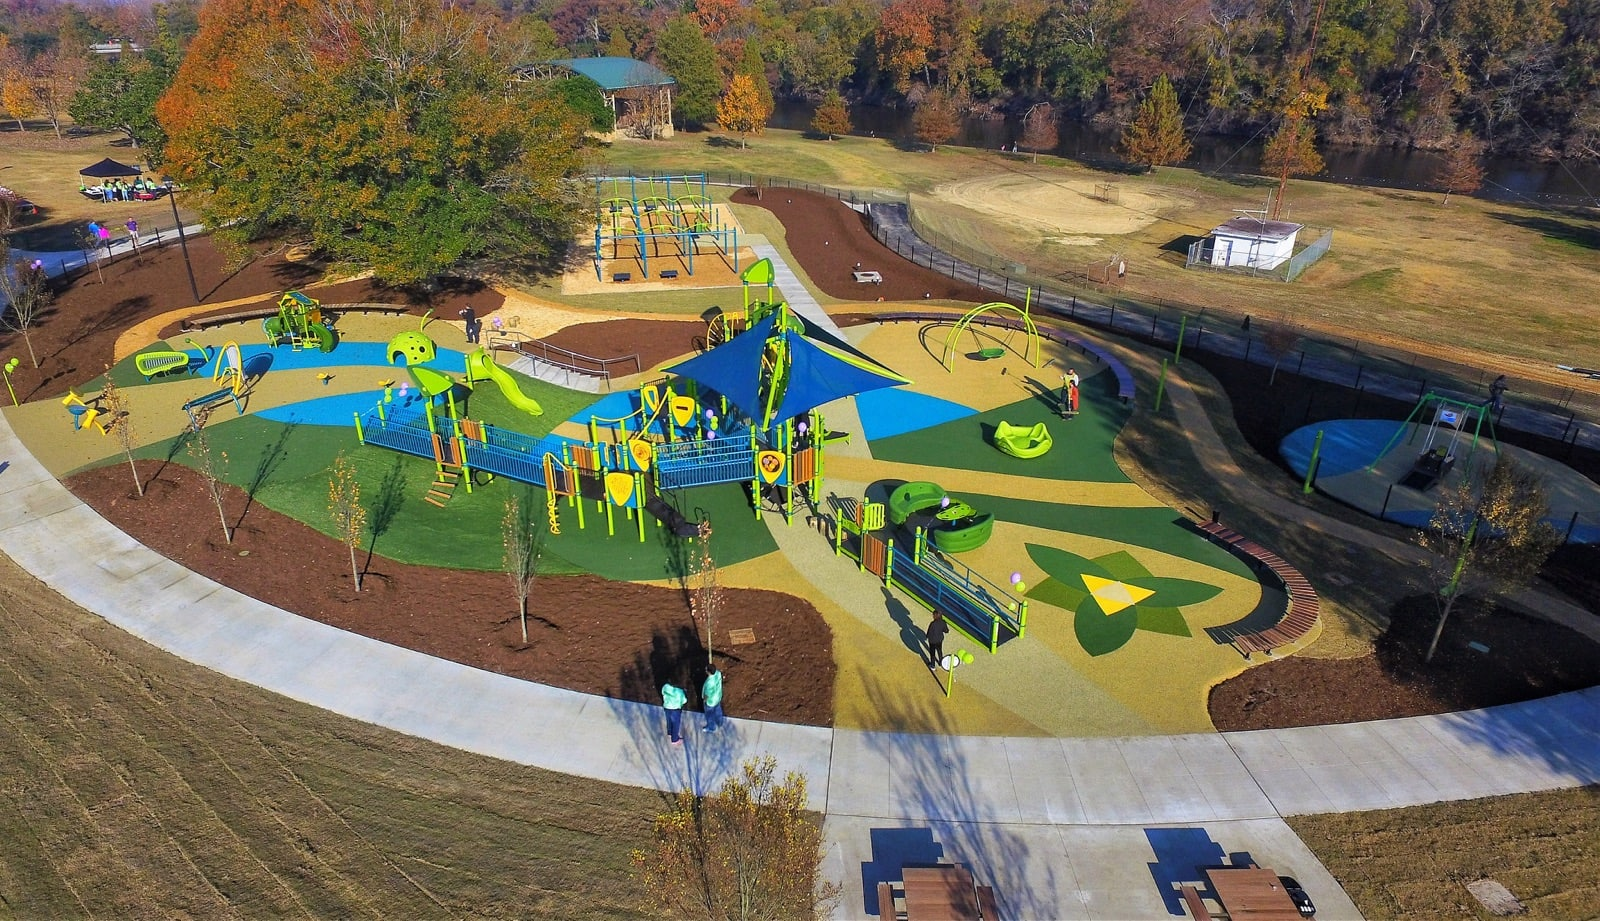 <h4>Town Common Playground<span> – NEW!</span></h4><h5>105 East 1st Street<br/>Greenville, NC 27858</h5>